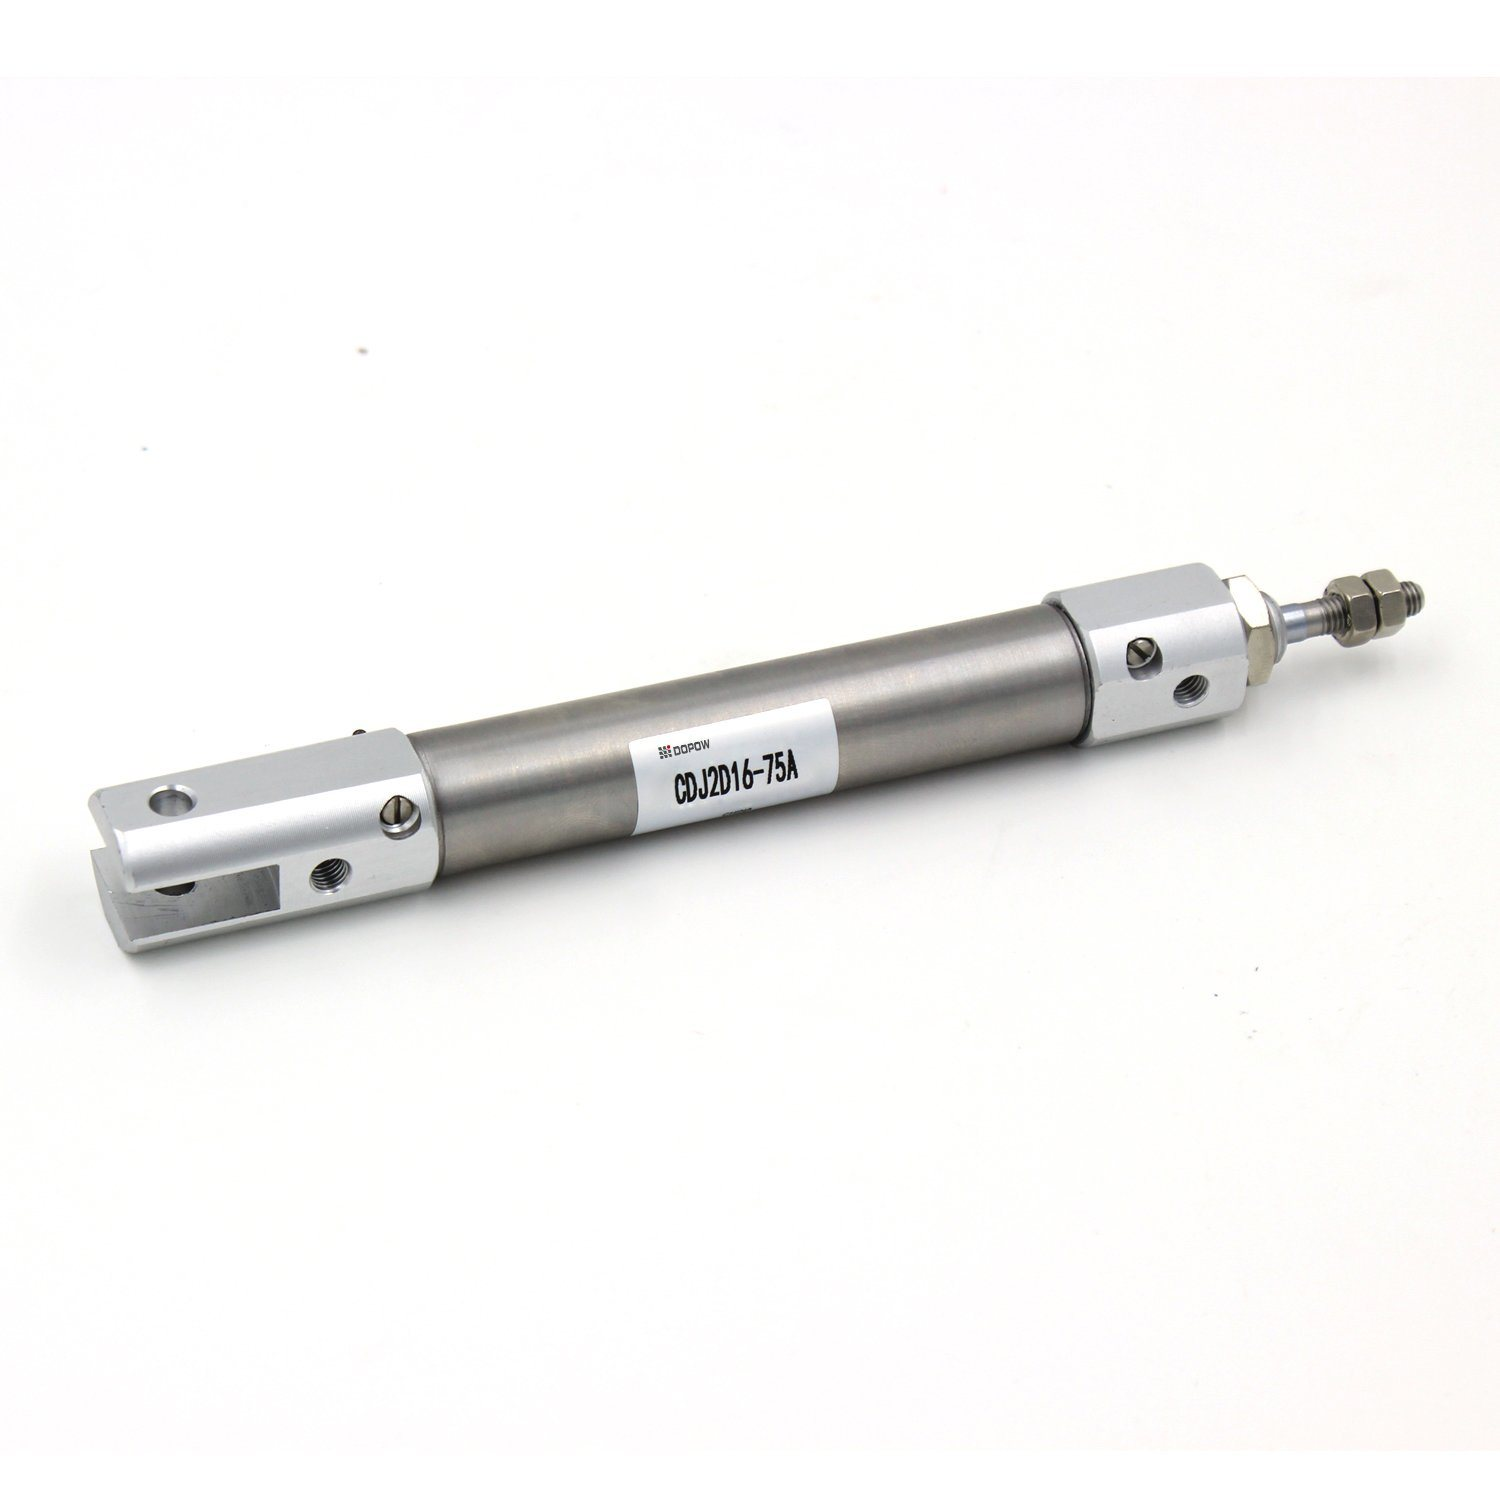 Dopow CDJ2b16-75A Stainless Mini Air Cylinder